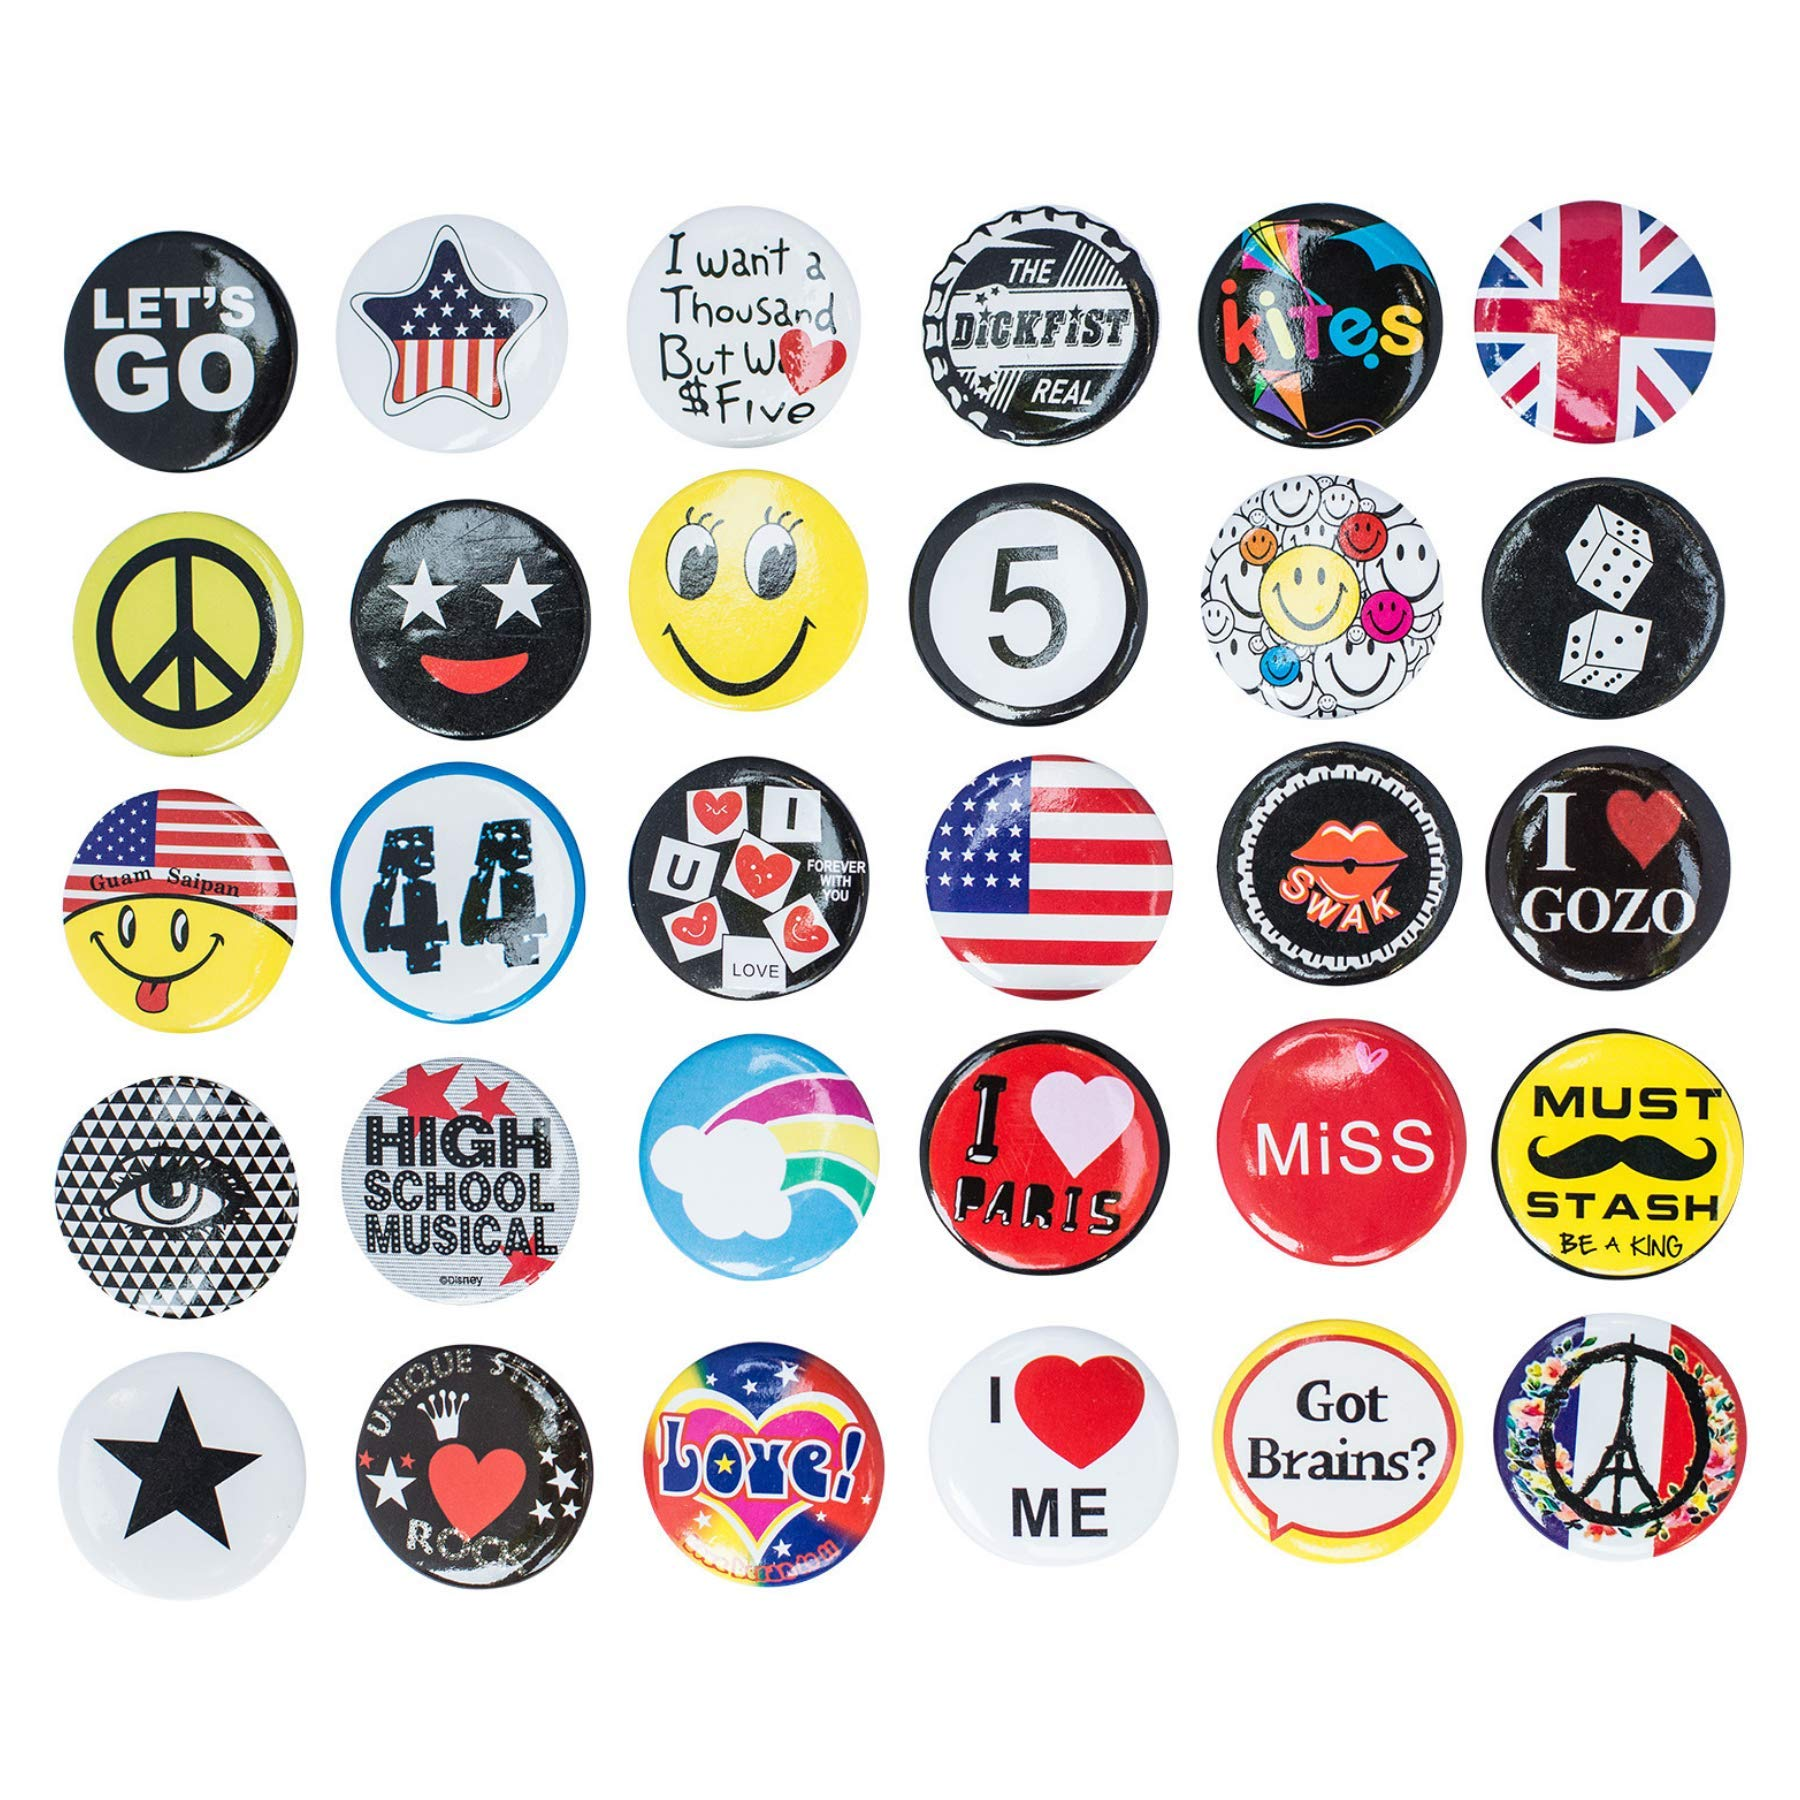 Special100% Huge Wholesale Set of 30 New Pins/Buttons/Badges 80's Buttons pins Slogans Sayings pin,Lapel pin for Clothes/Bags/Backpack/Hats/Jeans and More. by Special100%